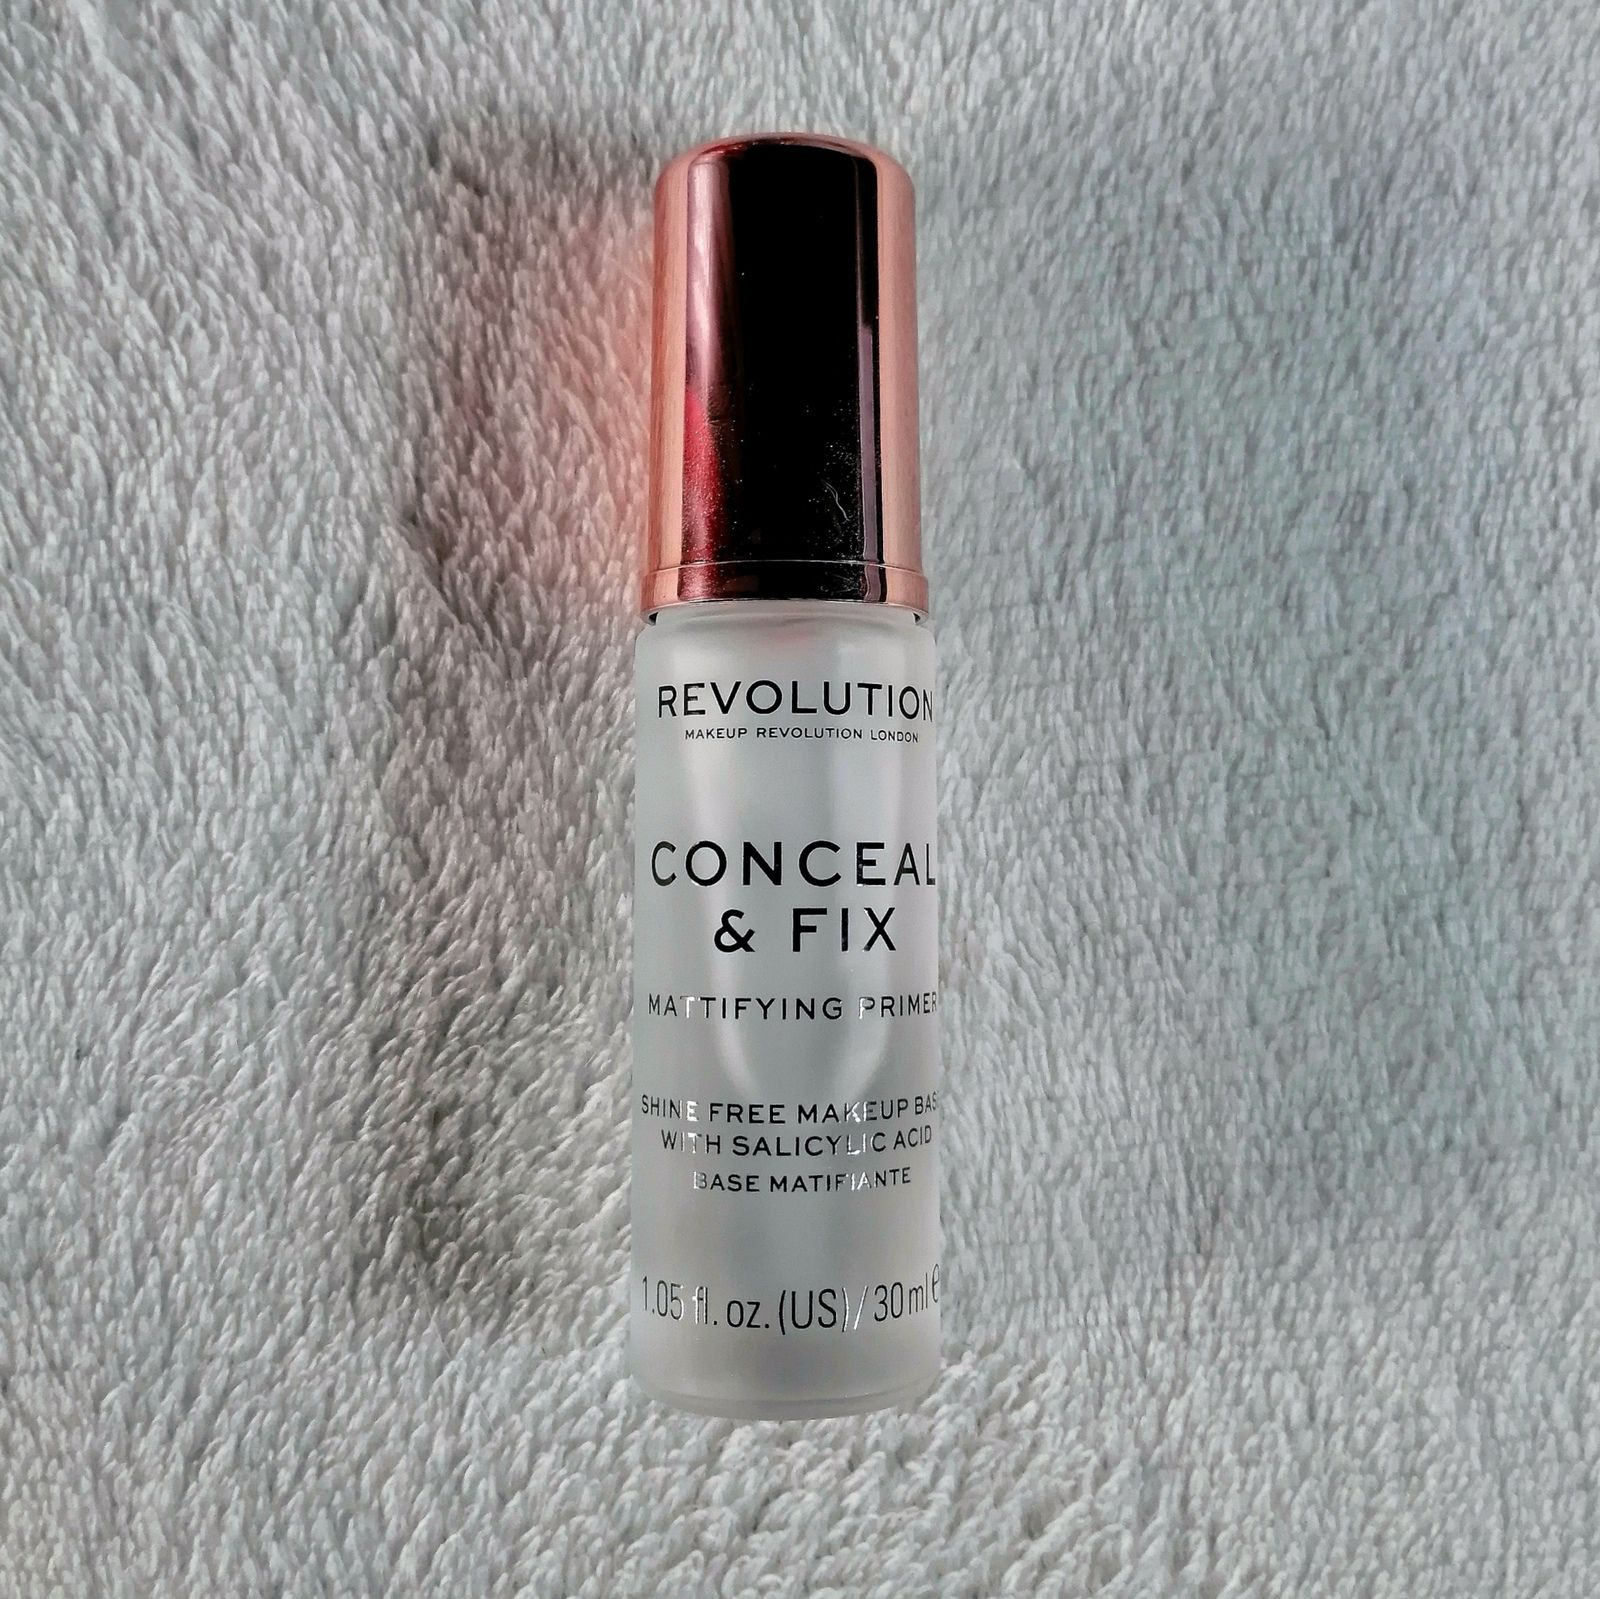 Revolution, Conceal & Fix, Mattifying Primer